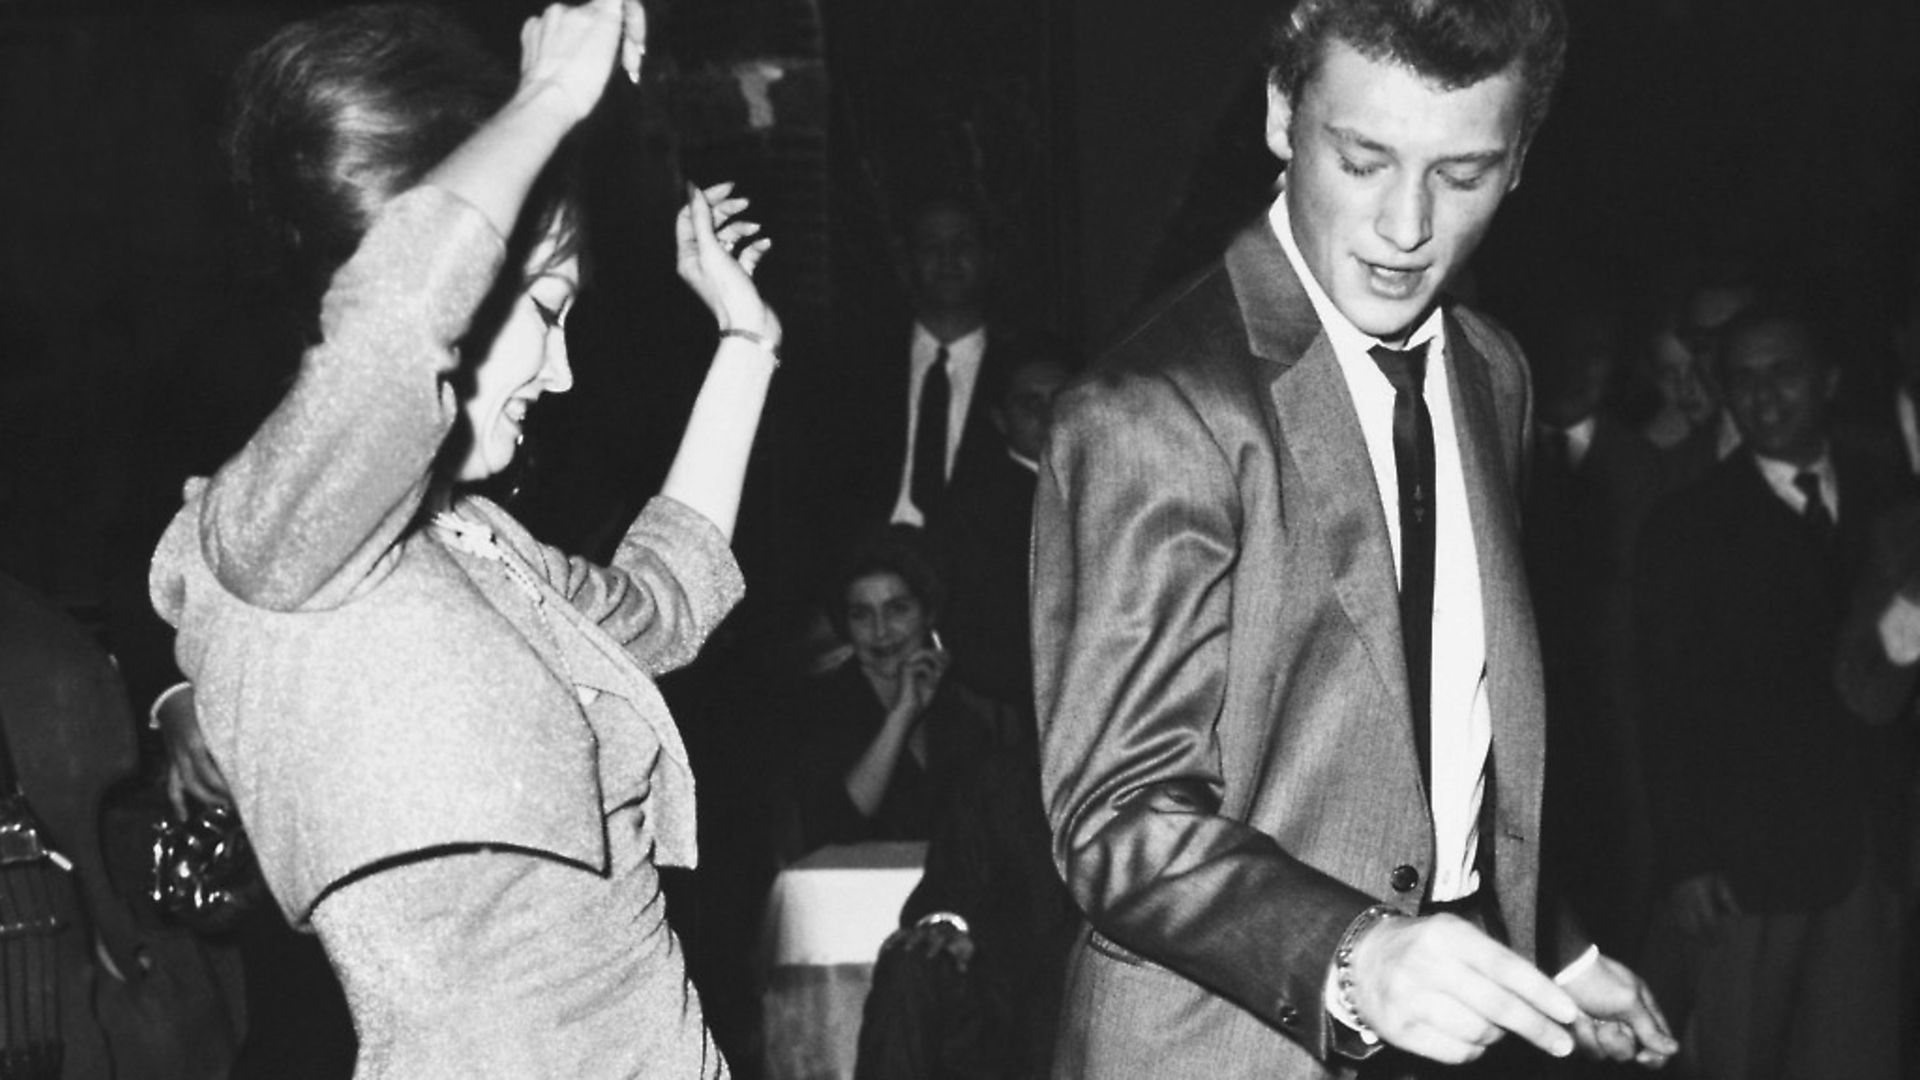 Johnny Hallyday and Valerie Camille dance the twist in Rome, in 1962. Photo: Getty - Credit: Gamma-Keystone via Getty Images